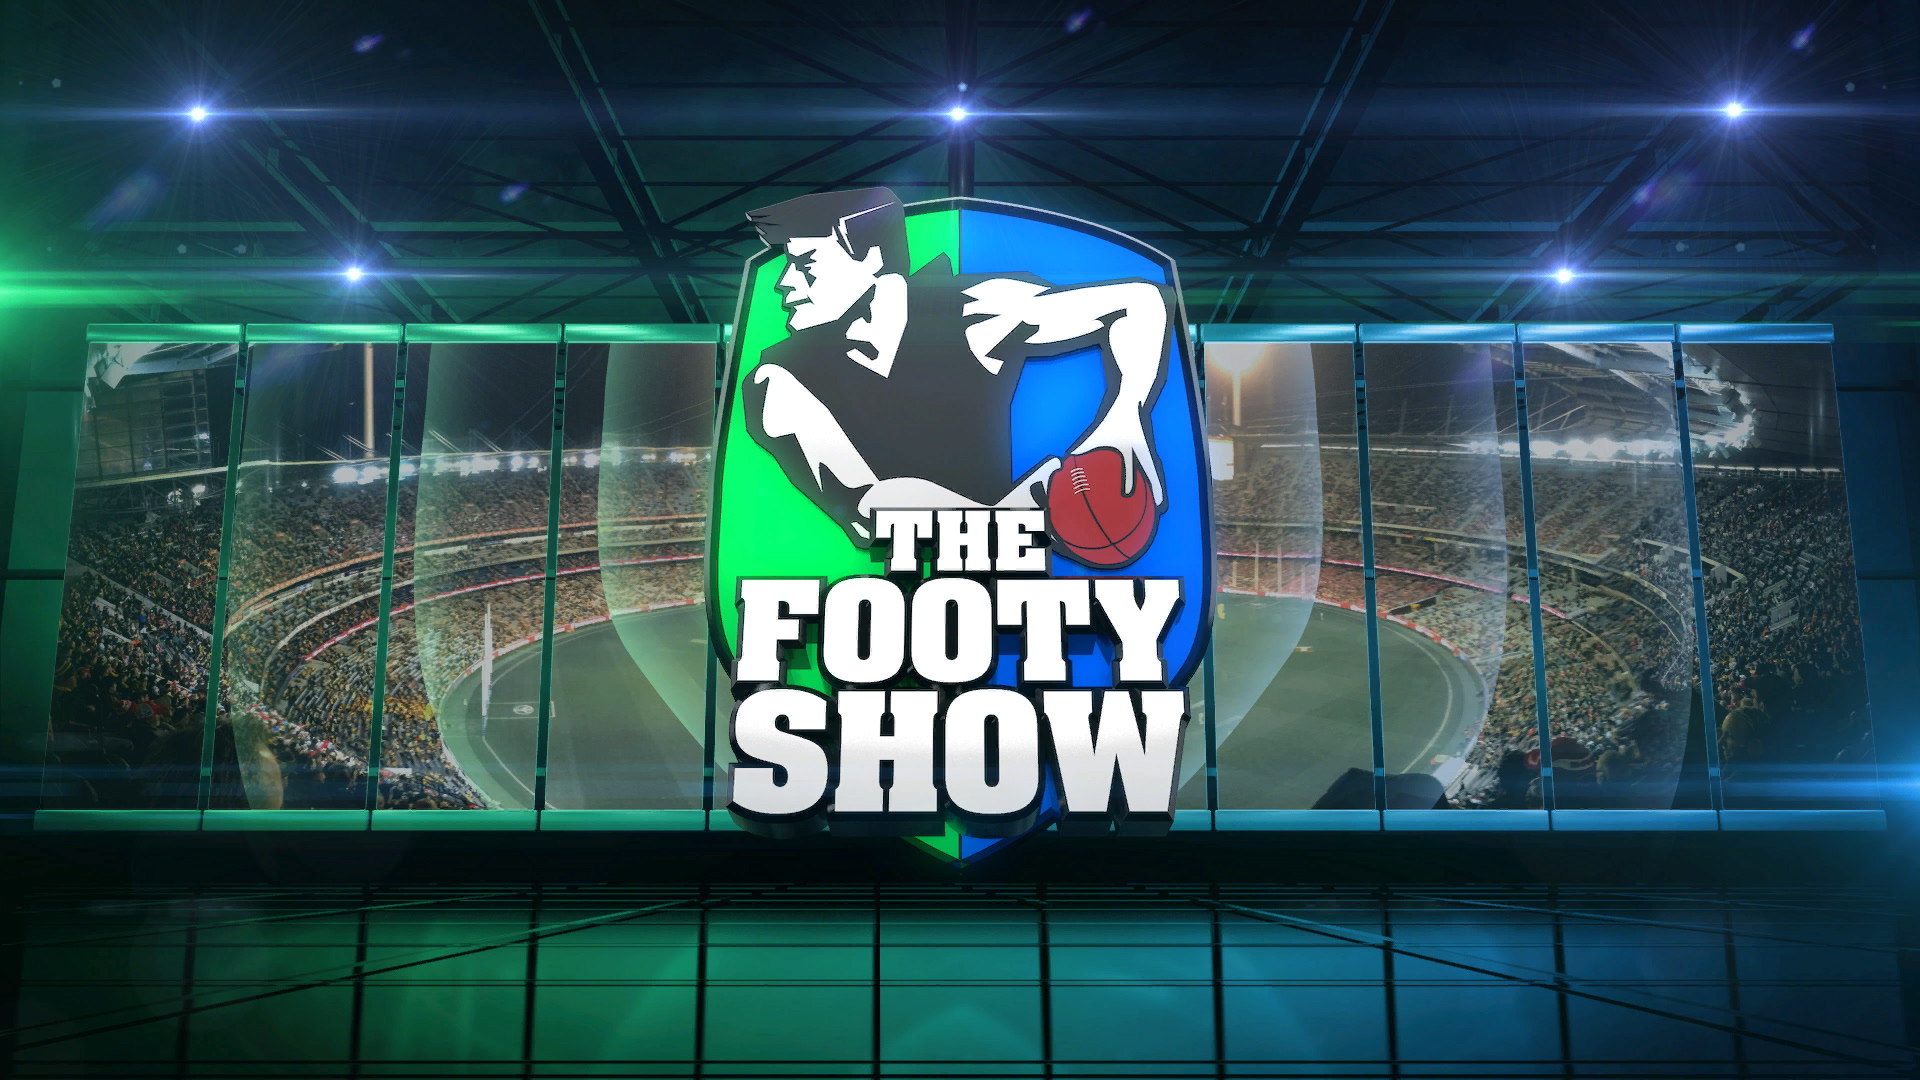 The Footy Show Screen Content